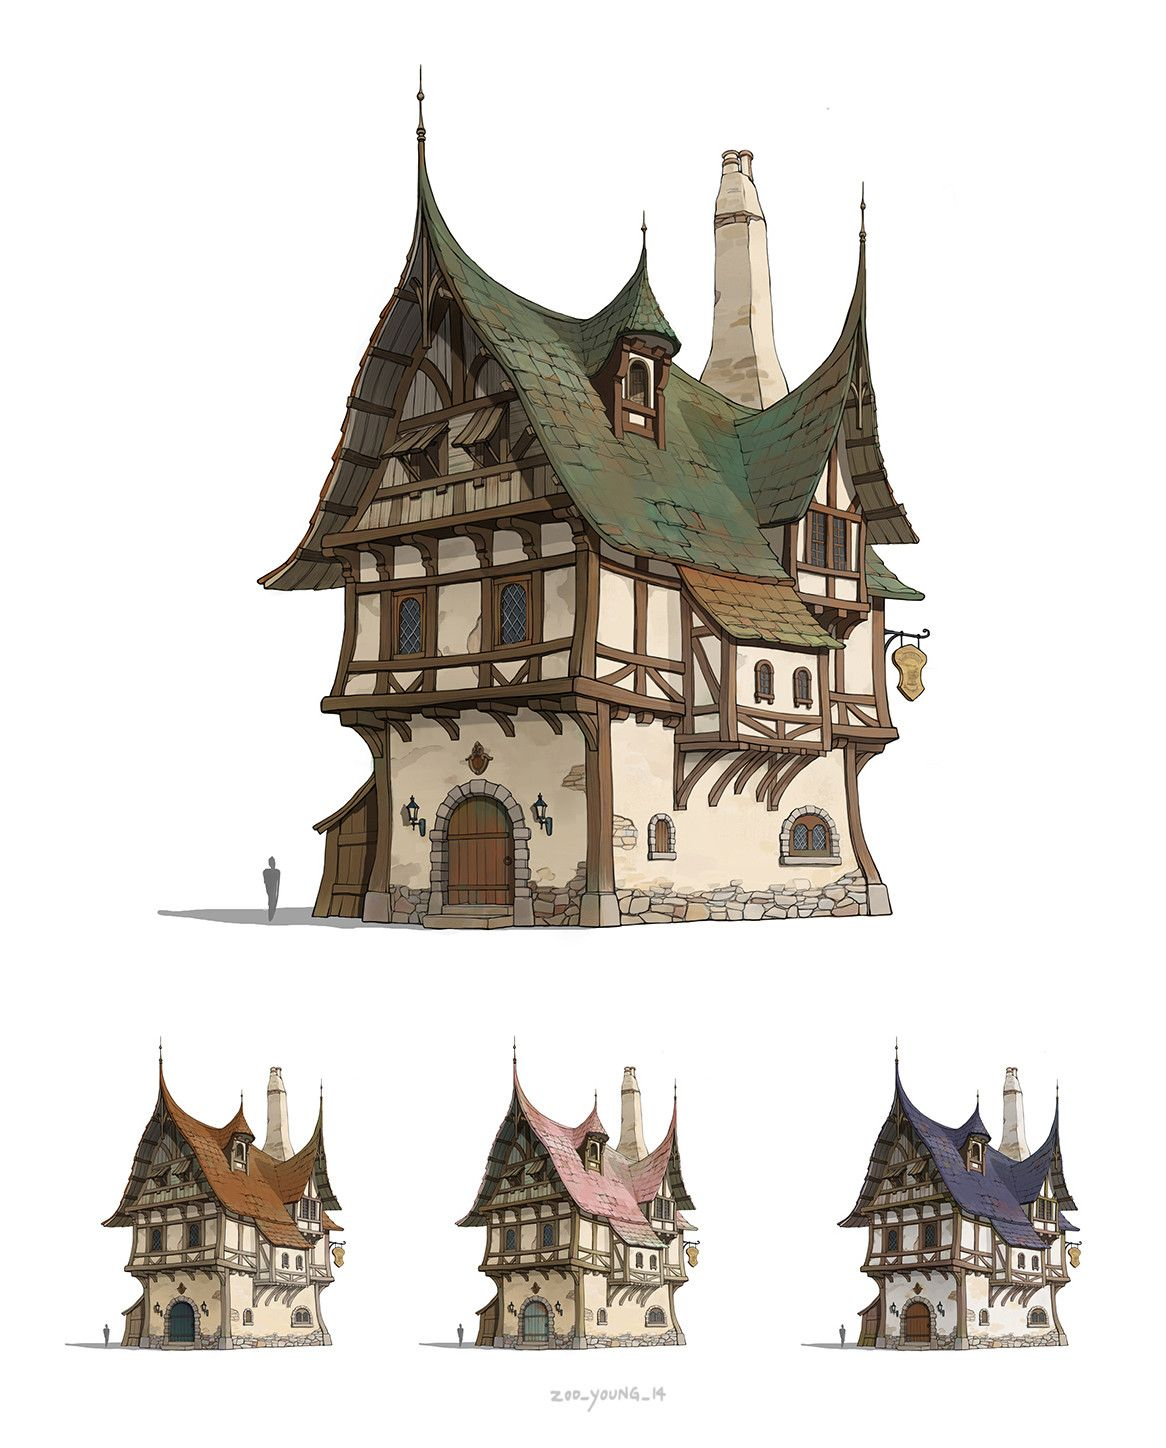 Pin by Han Hunter on iBuildingsi in 2019 Medieval houses